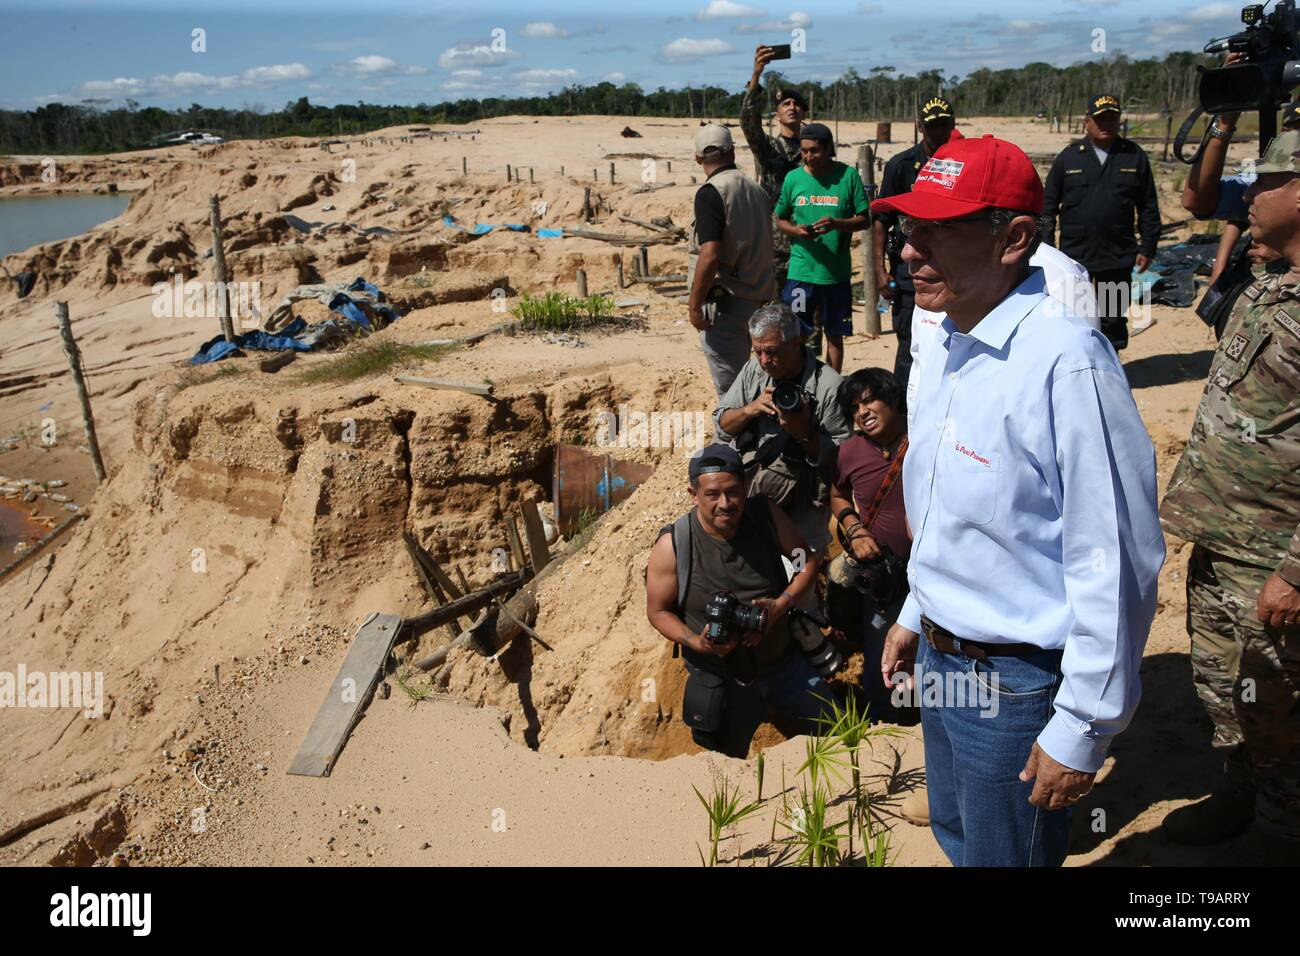 La Pampa, Peru. 17th May, 2019. The Peruvian president, Martin Vizcarra (R), accompanied by political, civil and military authorities, participates in the delivery of equipment donated by the United States to the Government of Peru to help the local police in the recovery efforts of the deforested area known as La Pampa, the largest illegal mining camp located in the southern region Amazonia of Madre de Dios, Peru, 17 May 2019. Credit: Ernesto Arias/EFE/Alamy Live News - Stock Image